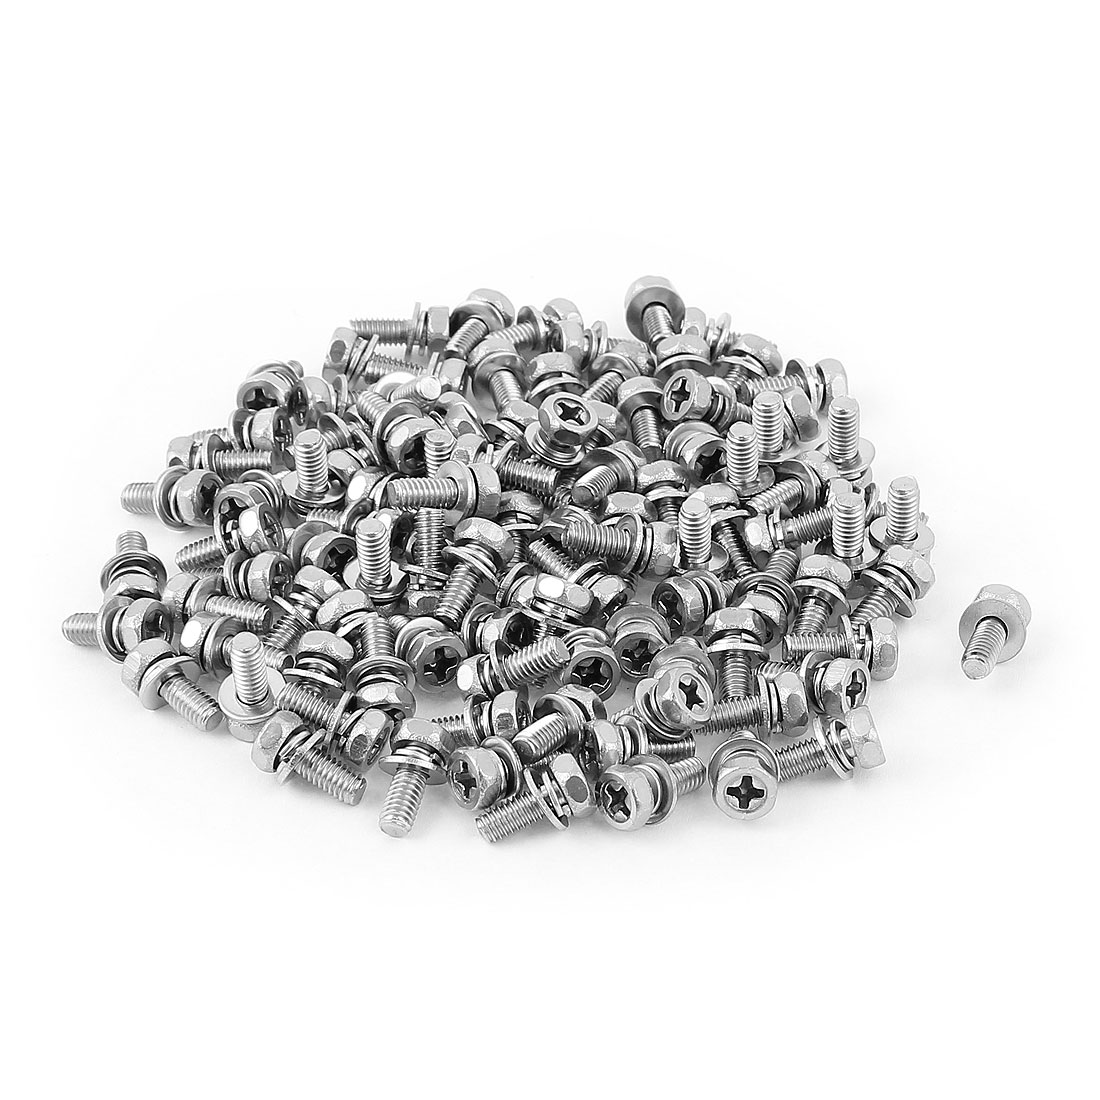 M4x10mmx8mm Hex Bolts Tap Phillips Head Screws 100pcs w Flat Split Washers